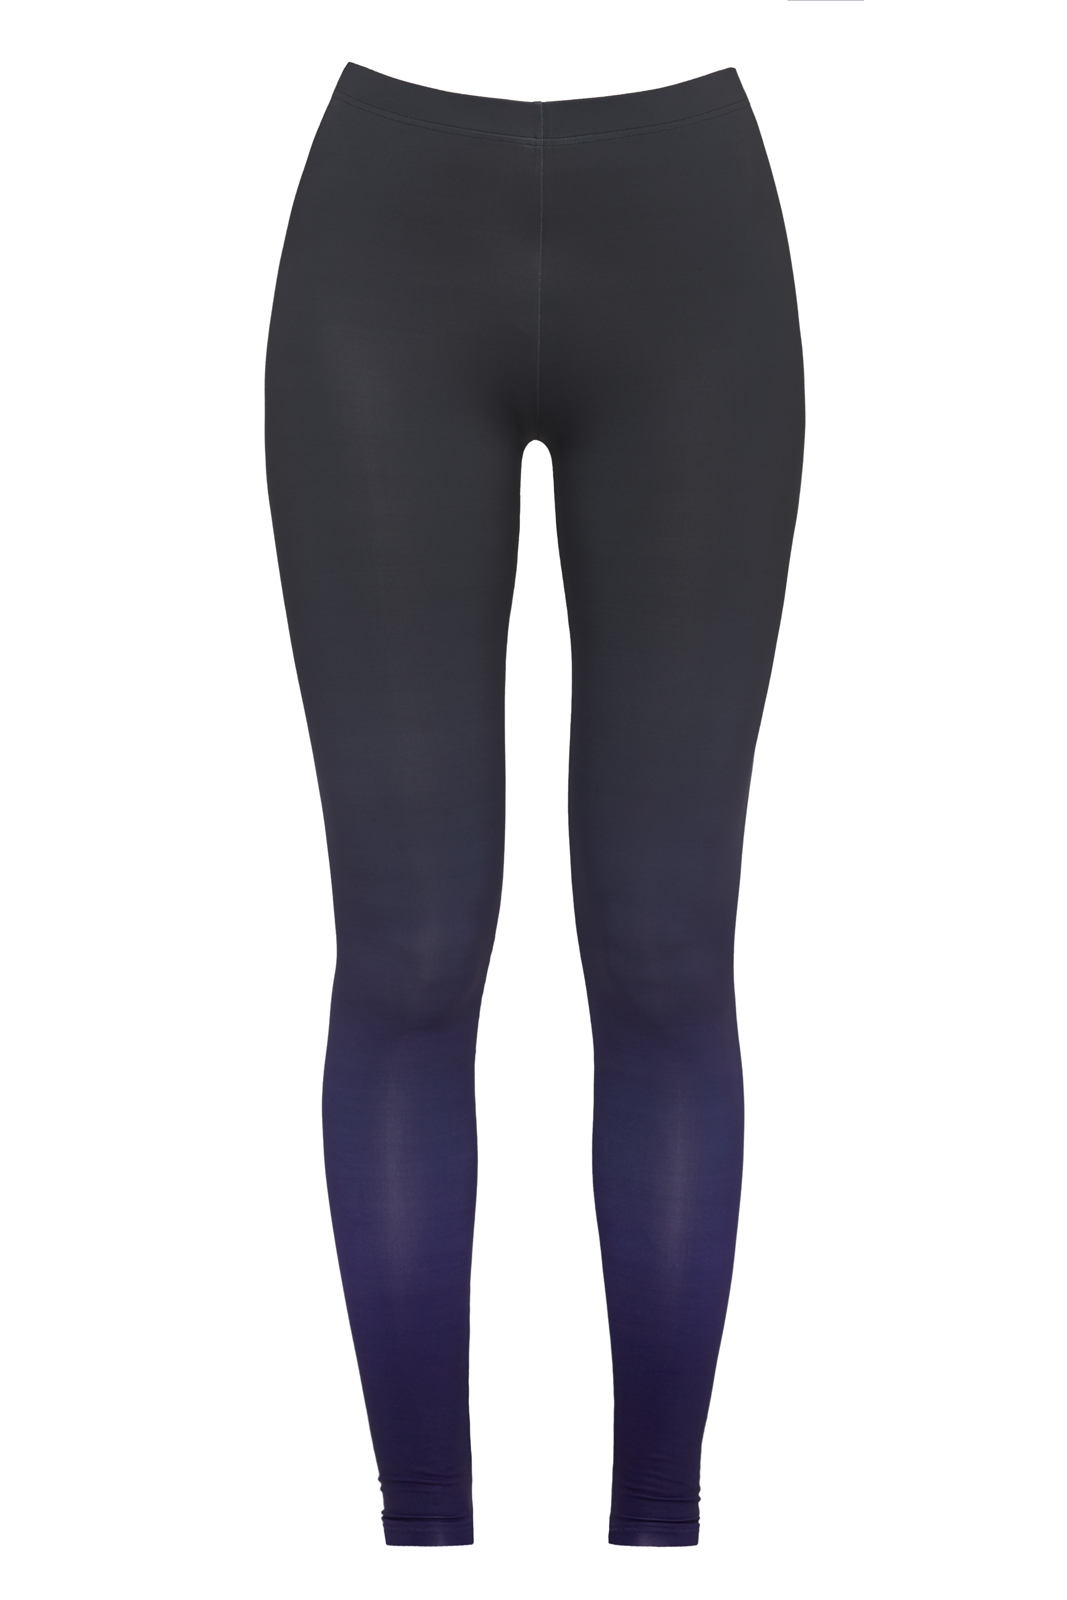 DAREEN Leggings by Naked Bruce on curated-crowd.com